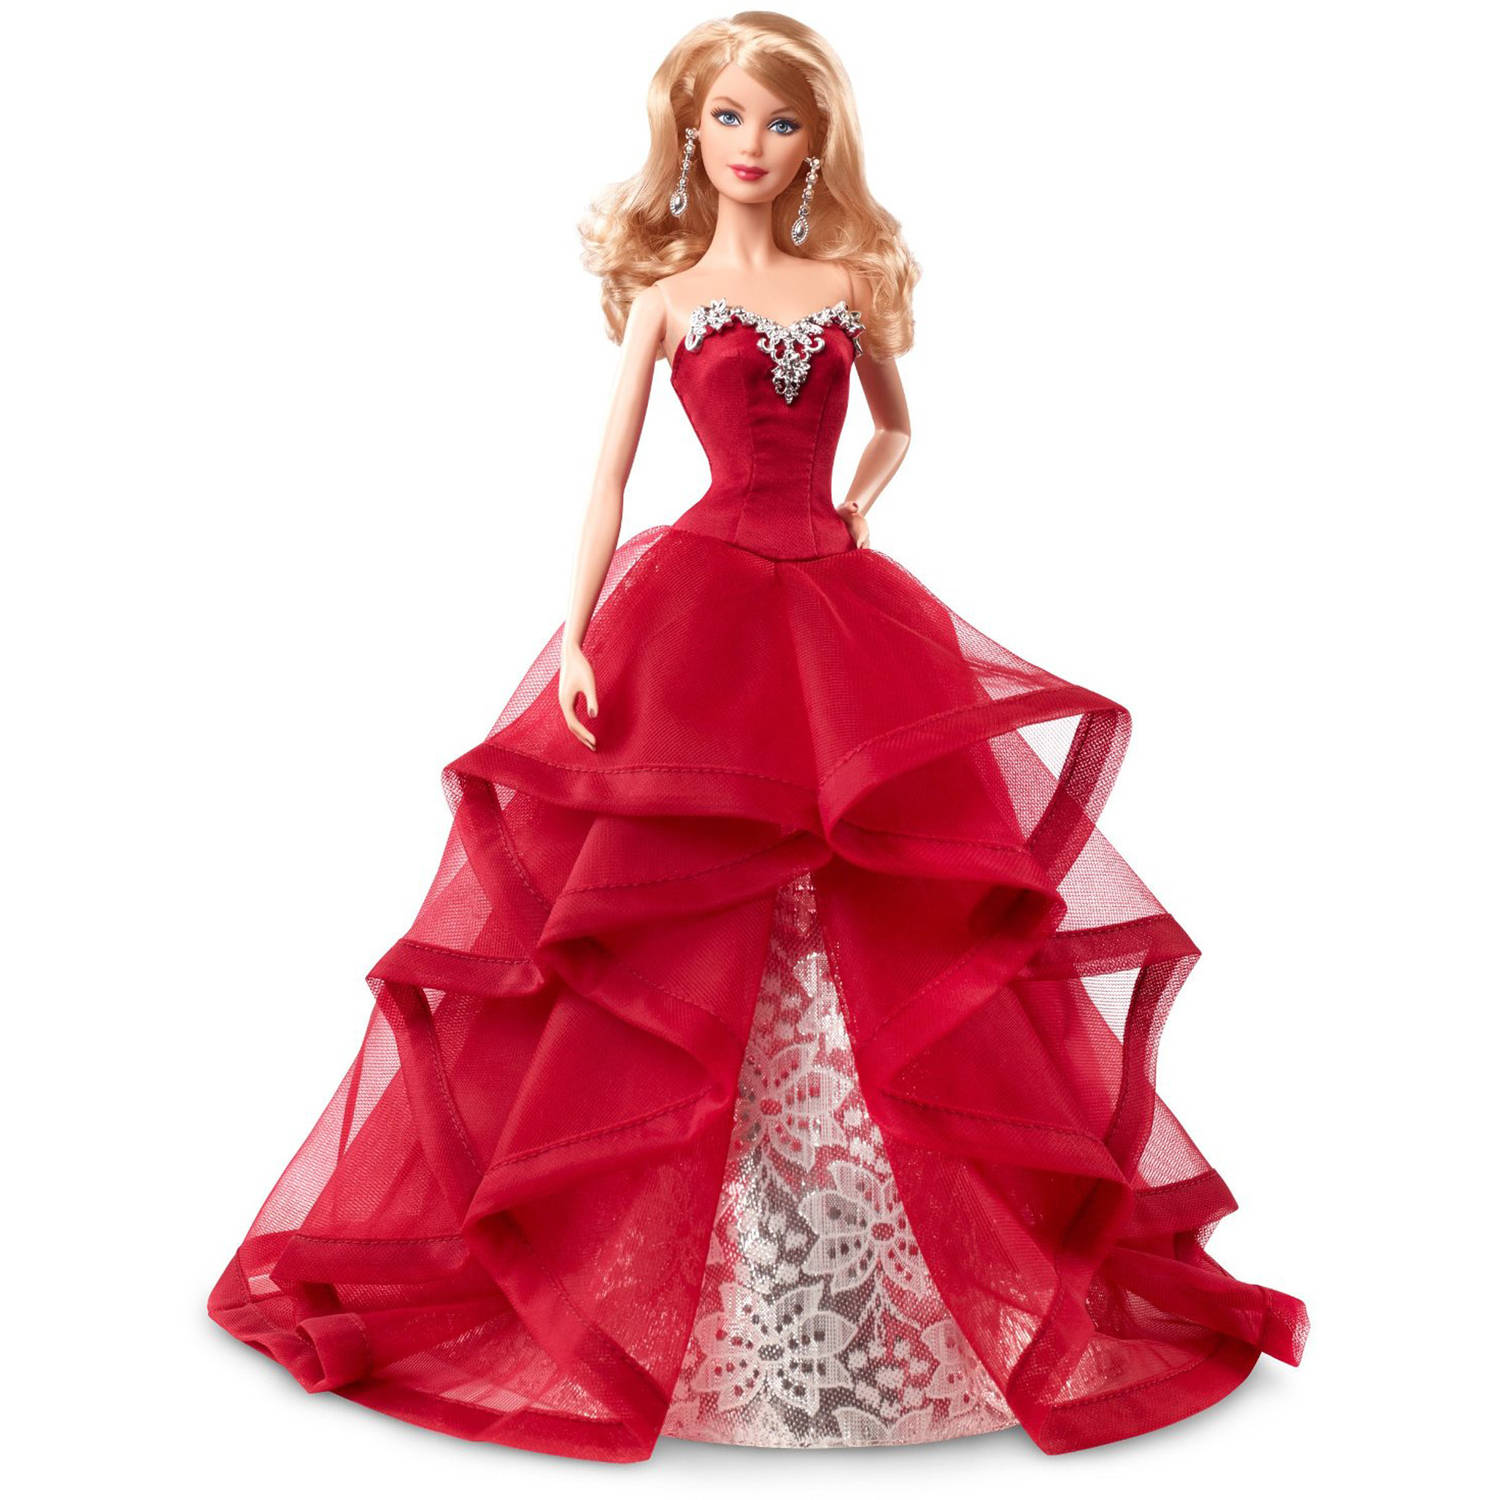 Barbie 2015 Holiday Barbie - Walmart.com